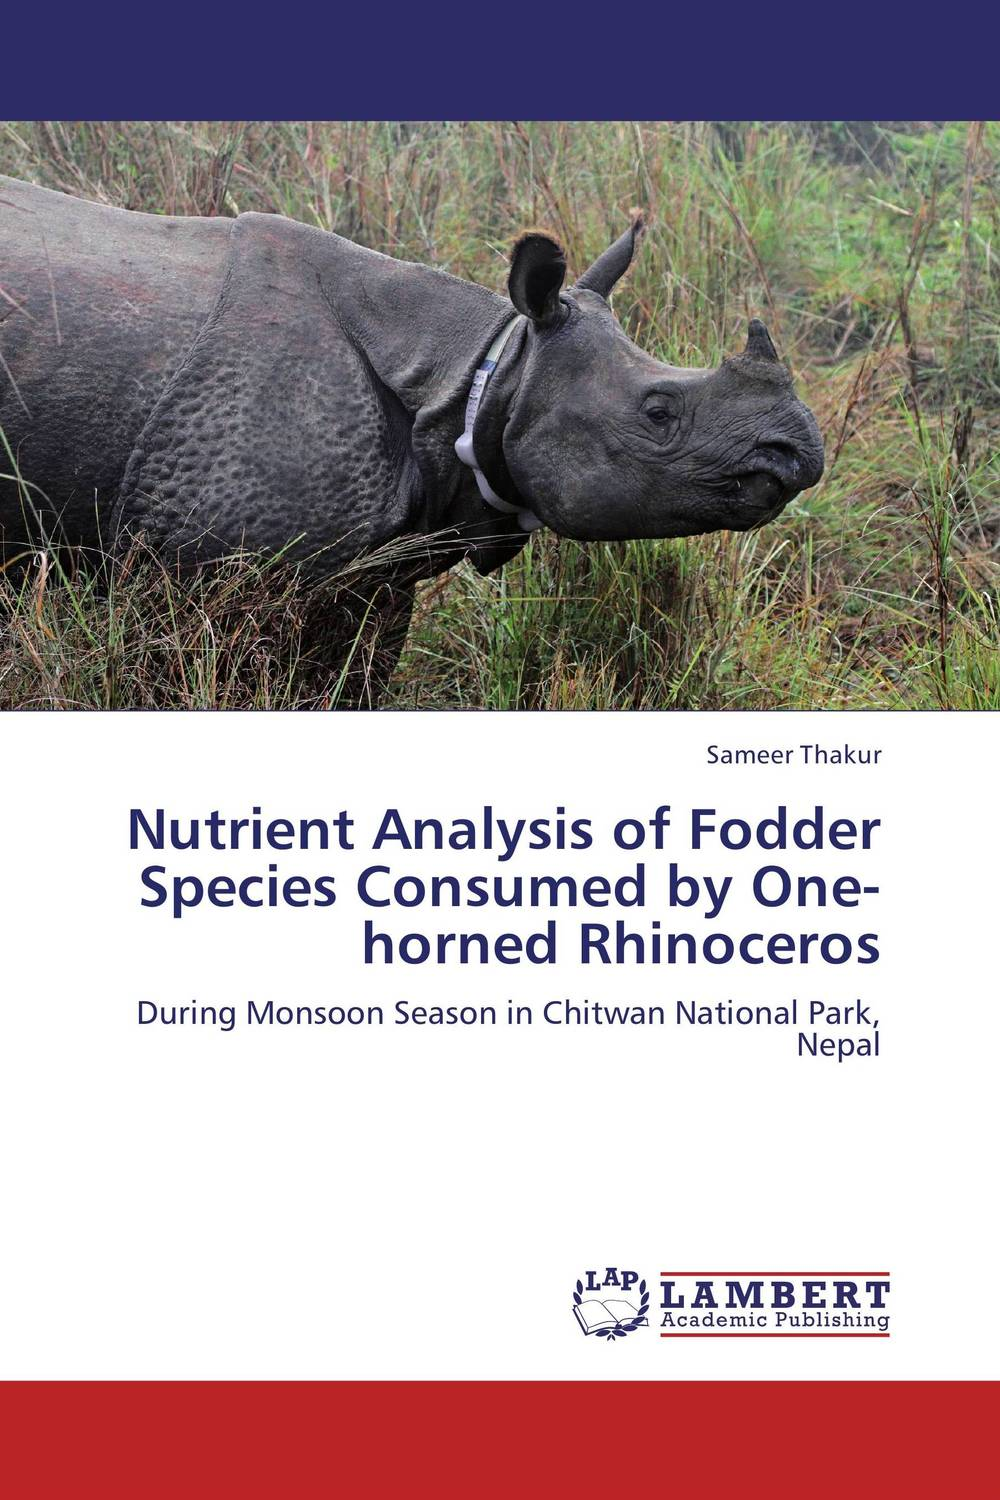 Nutrient Analysis of Fodder Species Consumed by One-horned Rhinoceros satya priya sinha bitapi c sinha and qamar qureshi the asiatic one horned rhinoceros rhinoceros unicornis